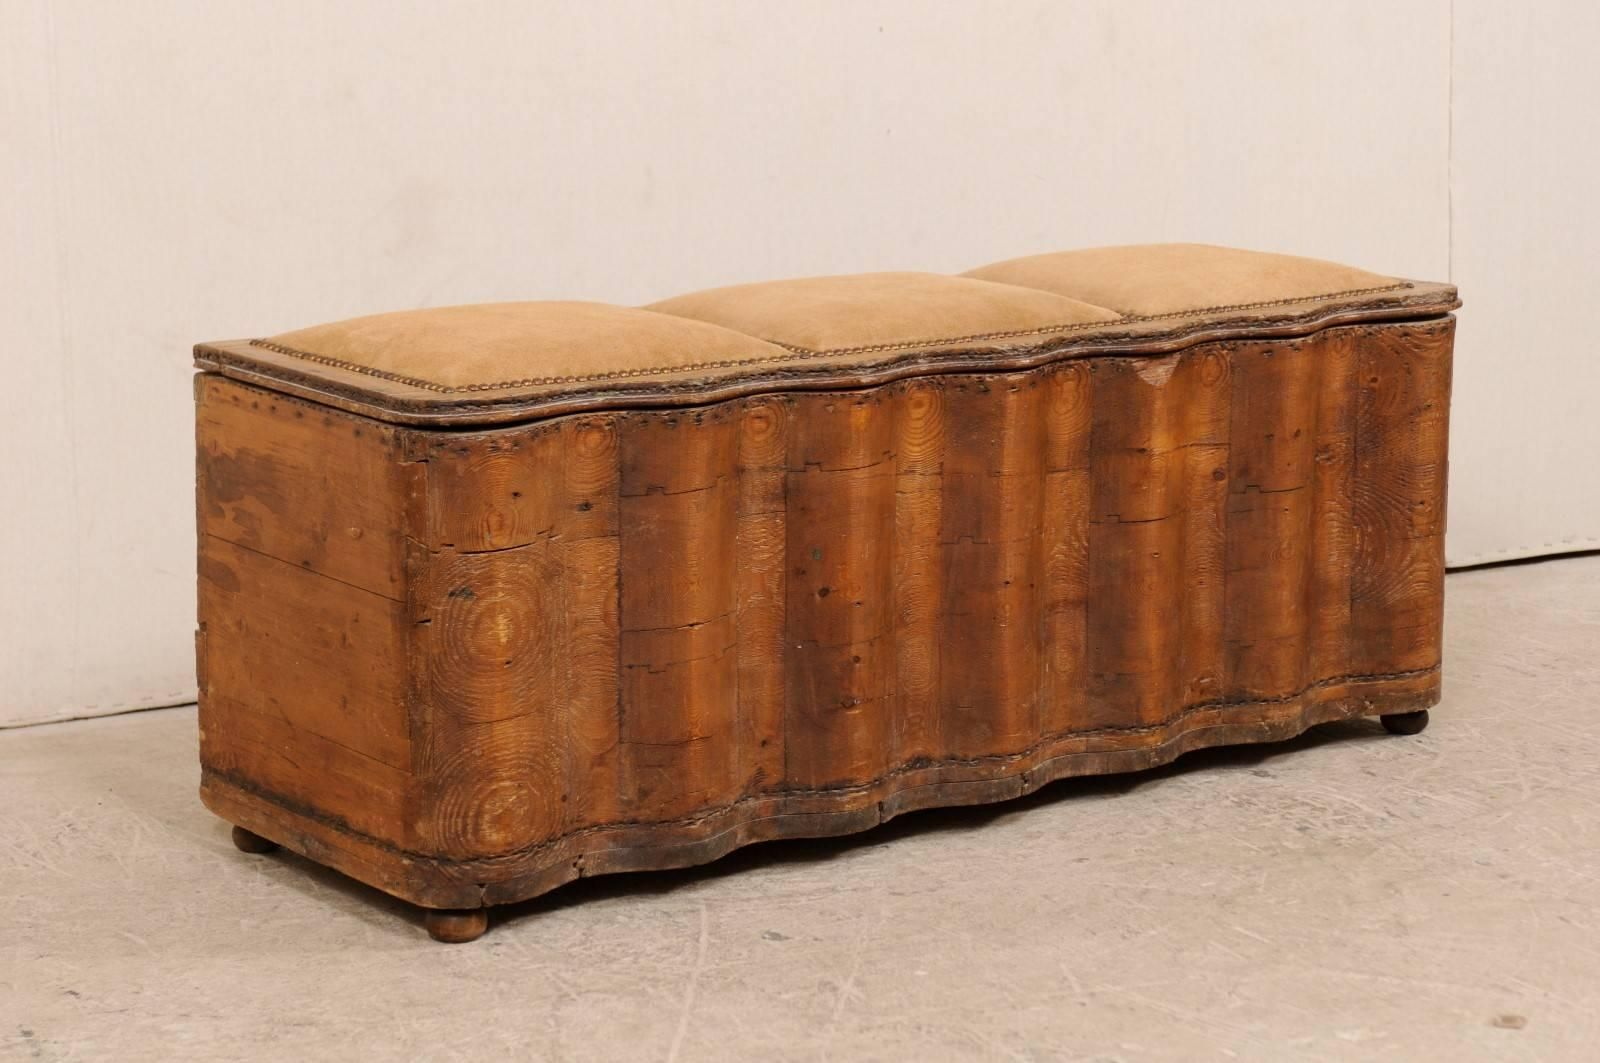 Italian Early 19th Century Undulating Wood Bench With Storage And